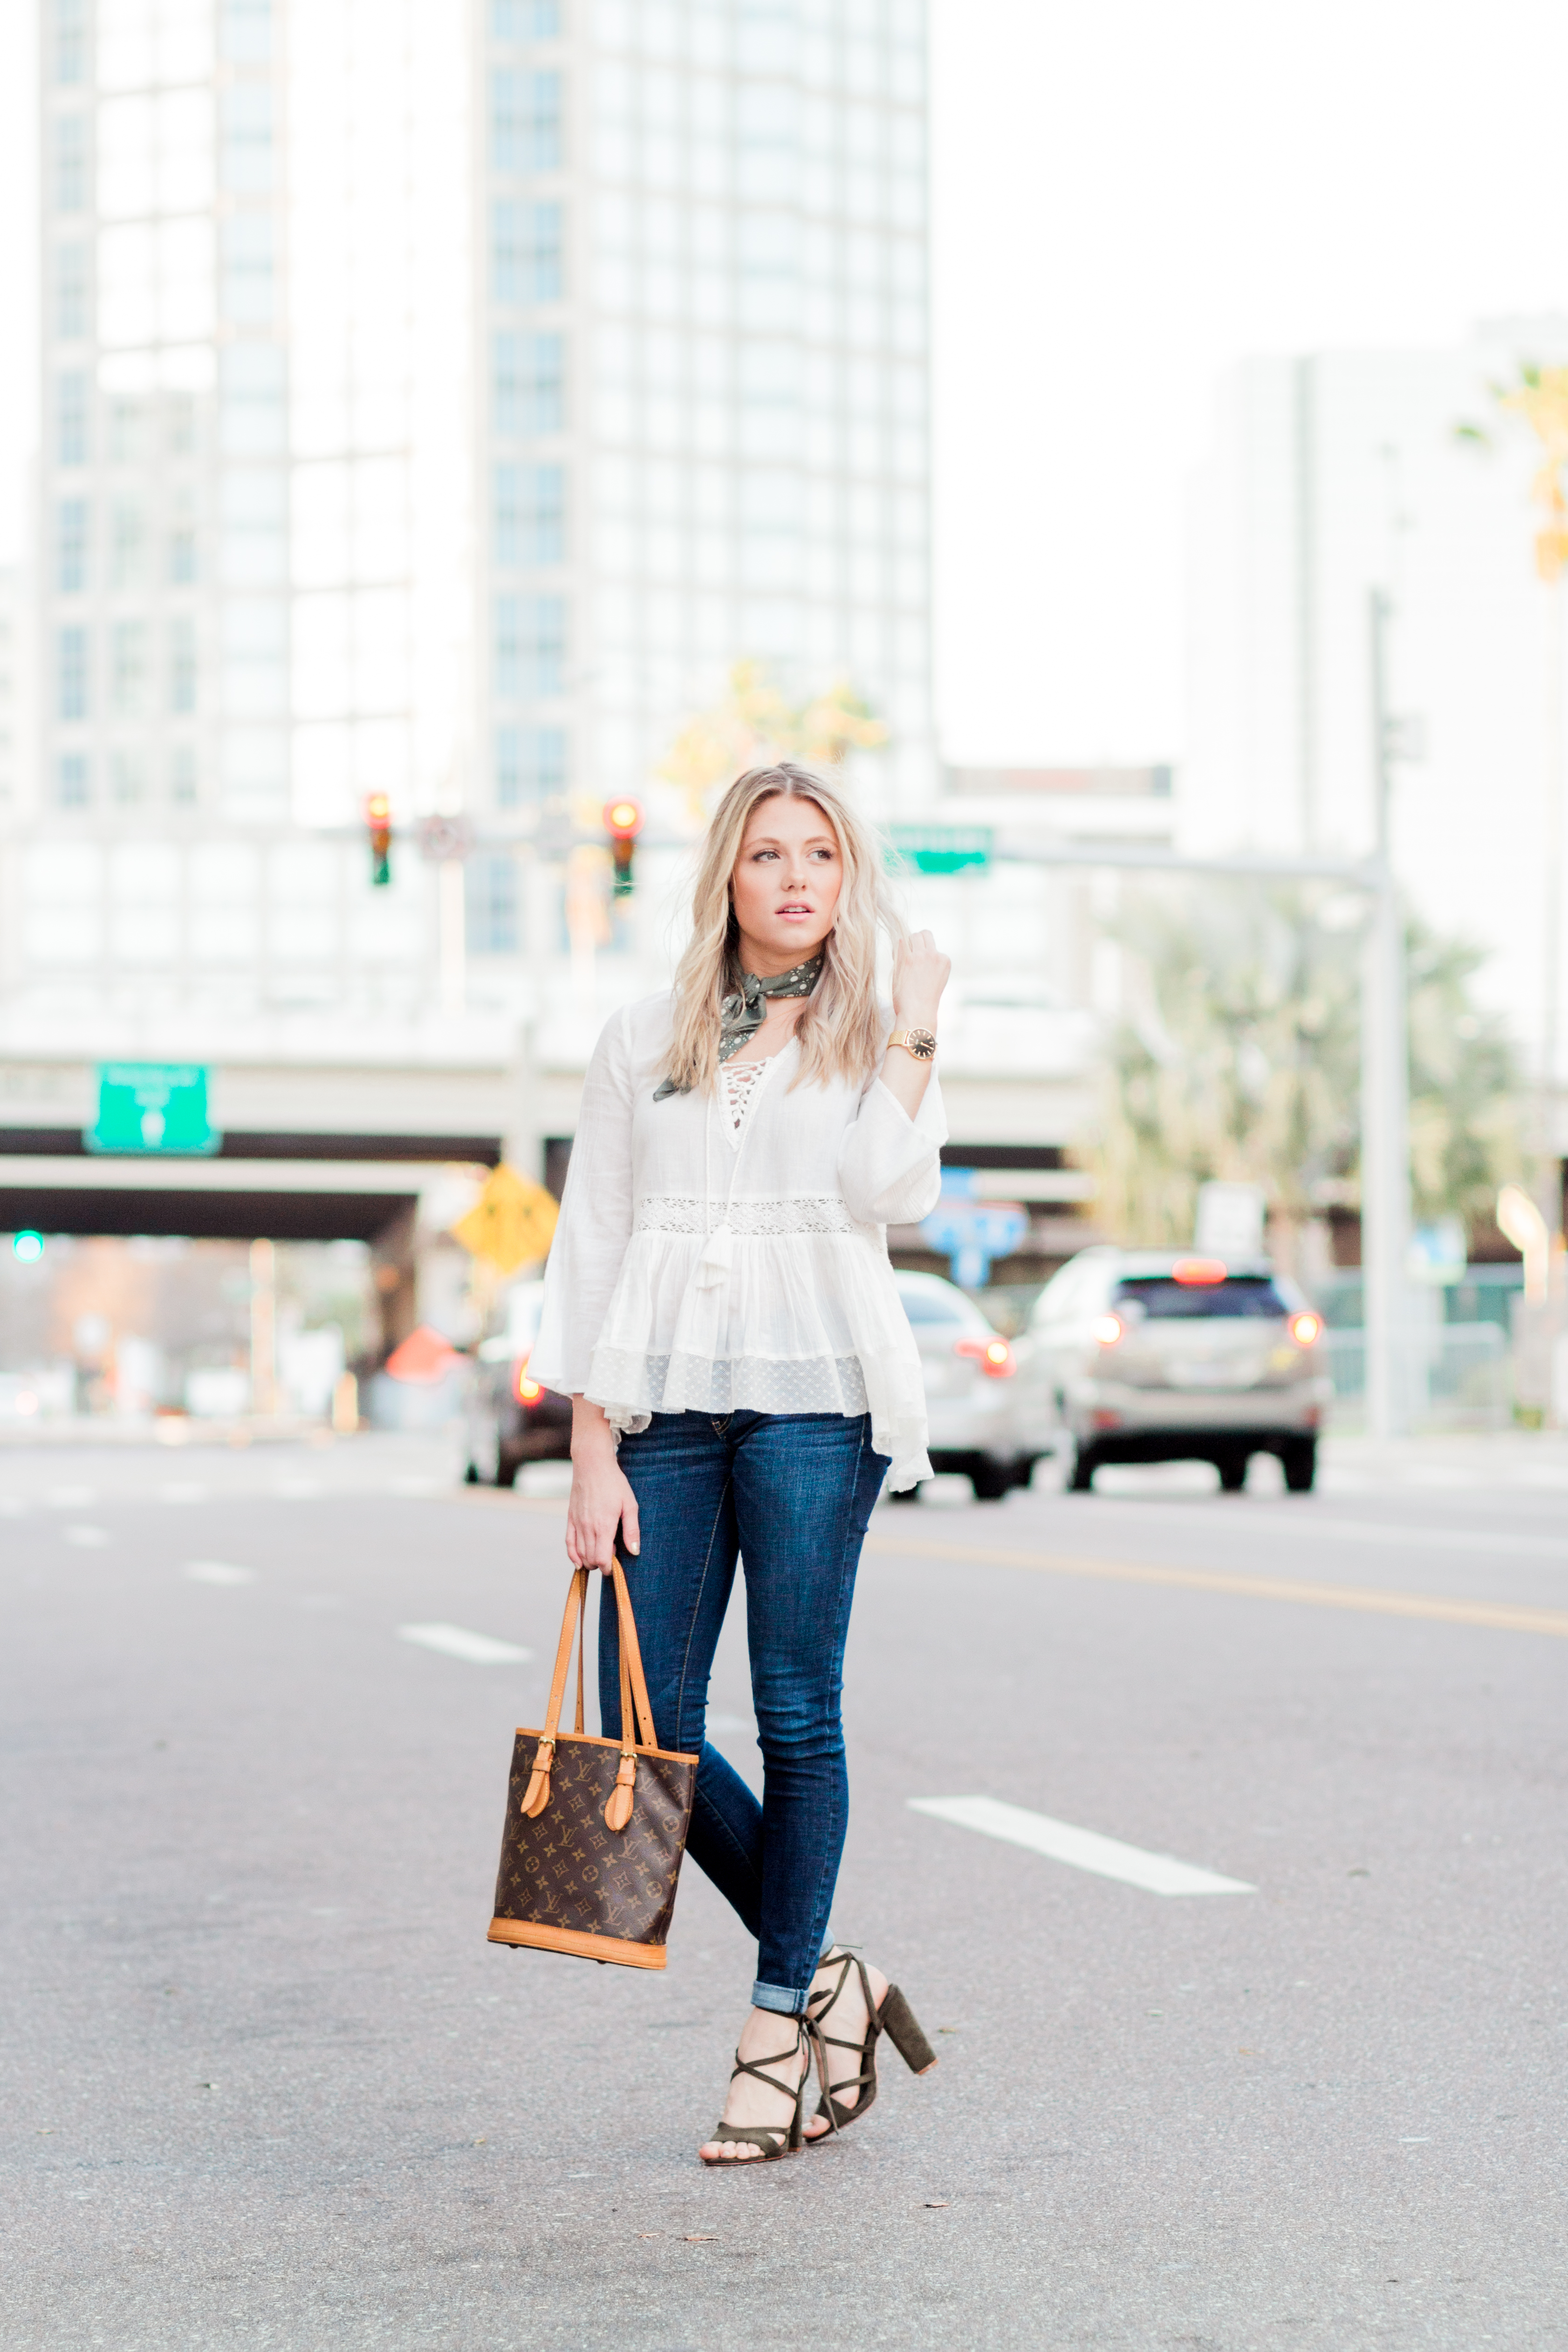 c38149f97af7 Aerie Spring Collection by American Eagle Outfitters    Coffee With ...